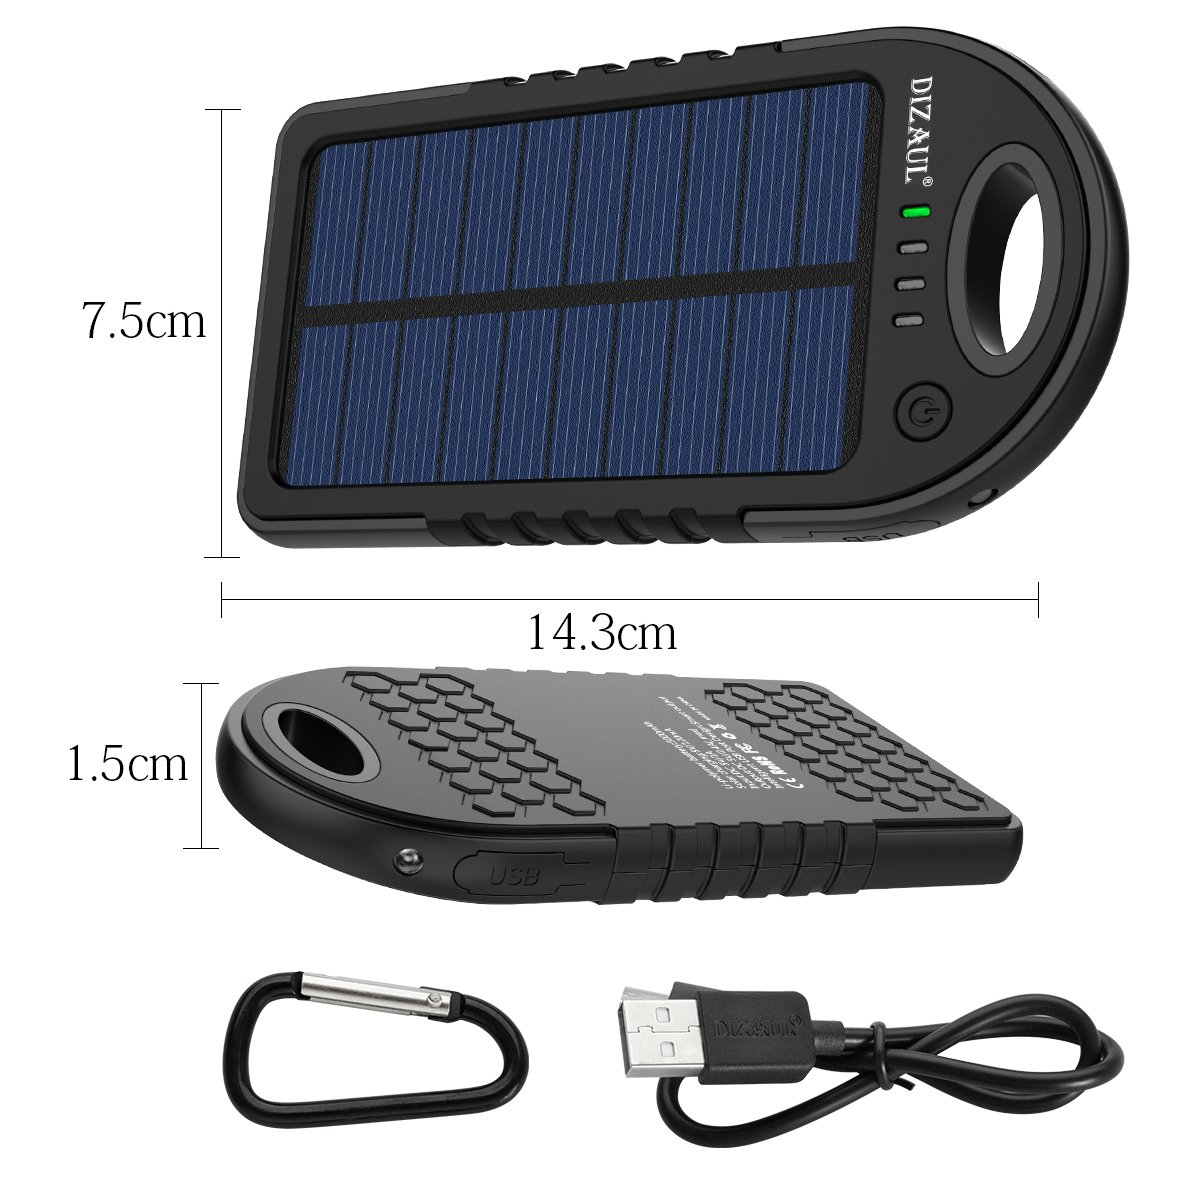 Solar portable charger gifts for people who love to travel